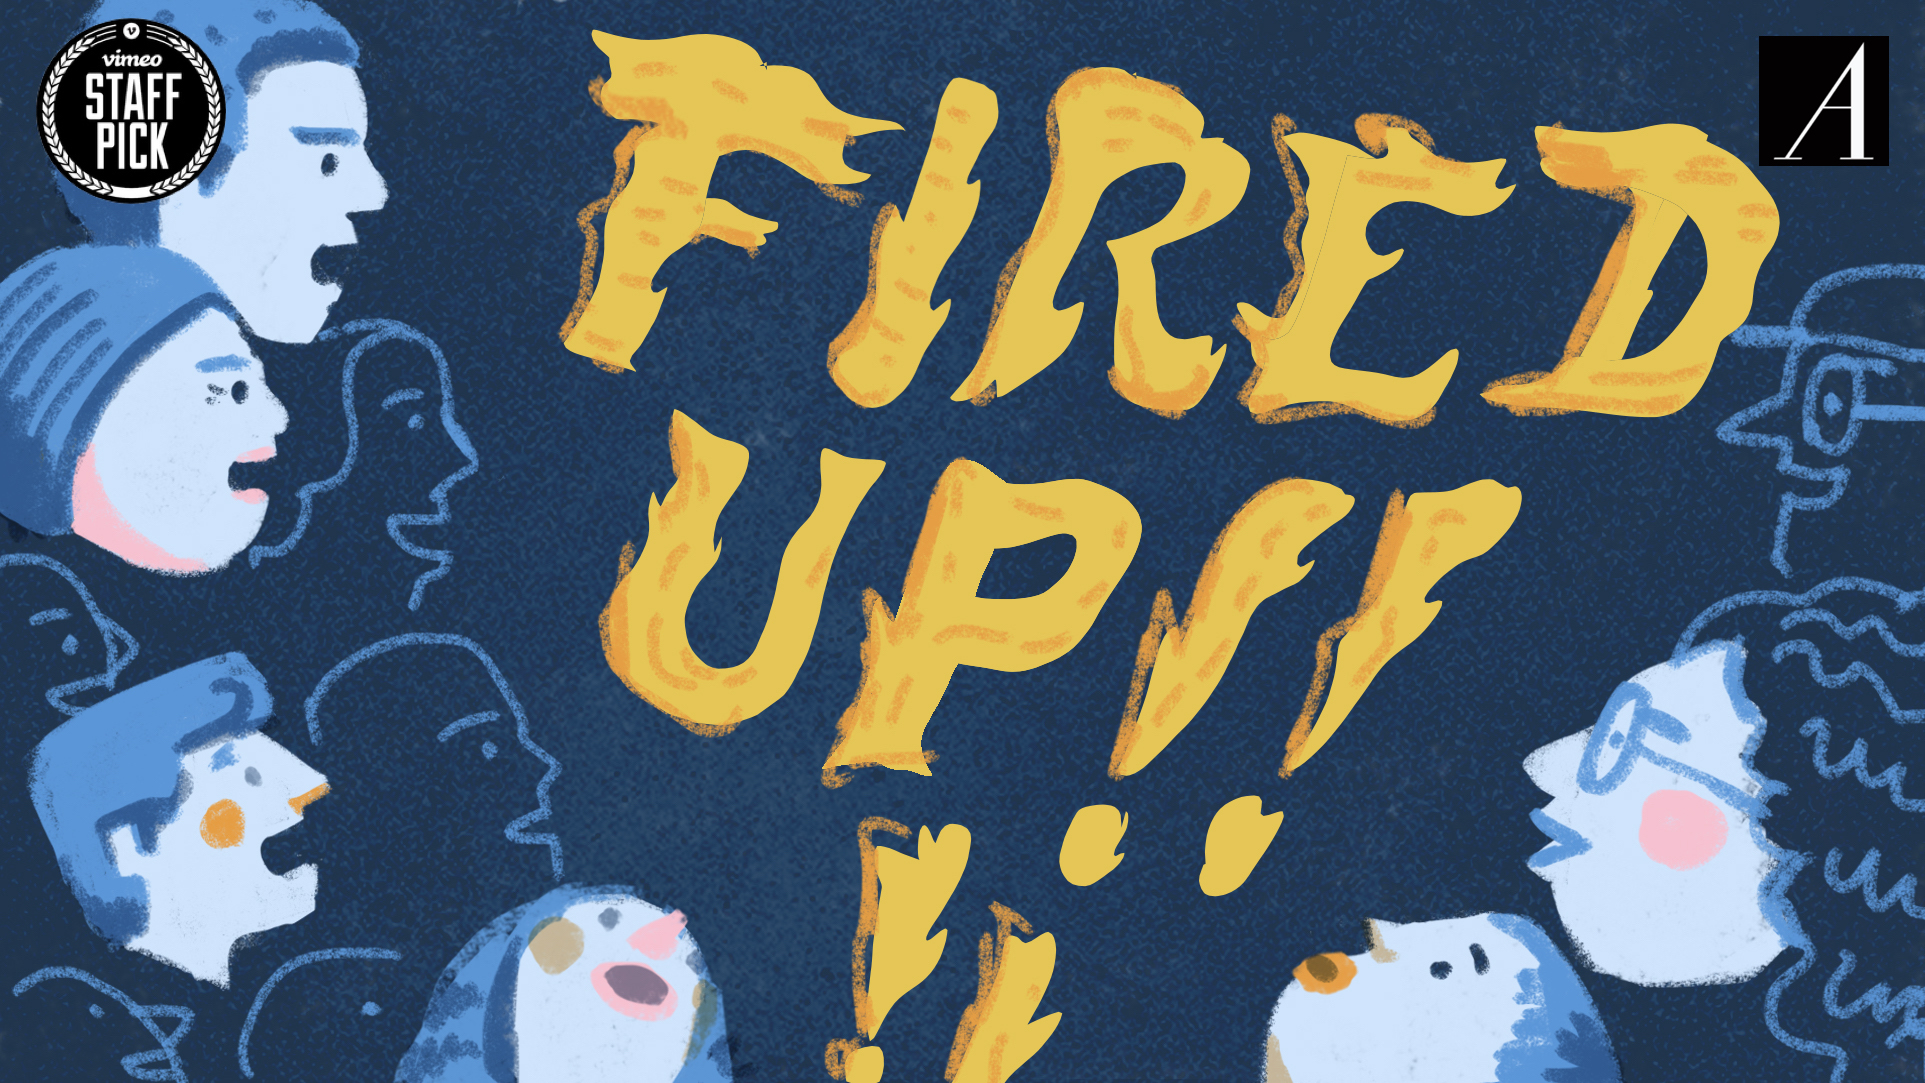 Copy of Fired Up